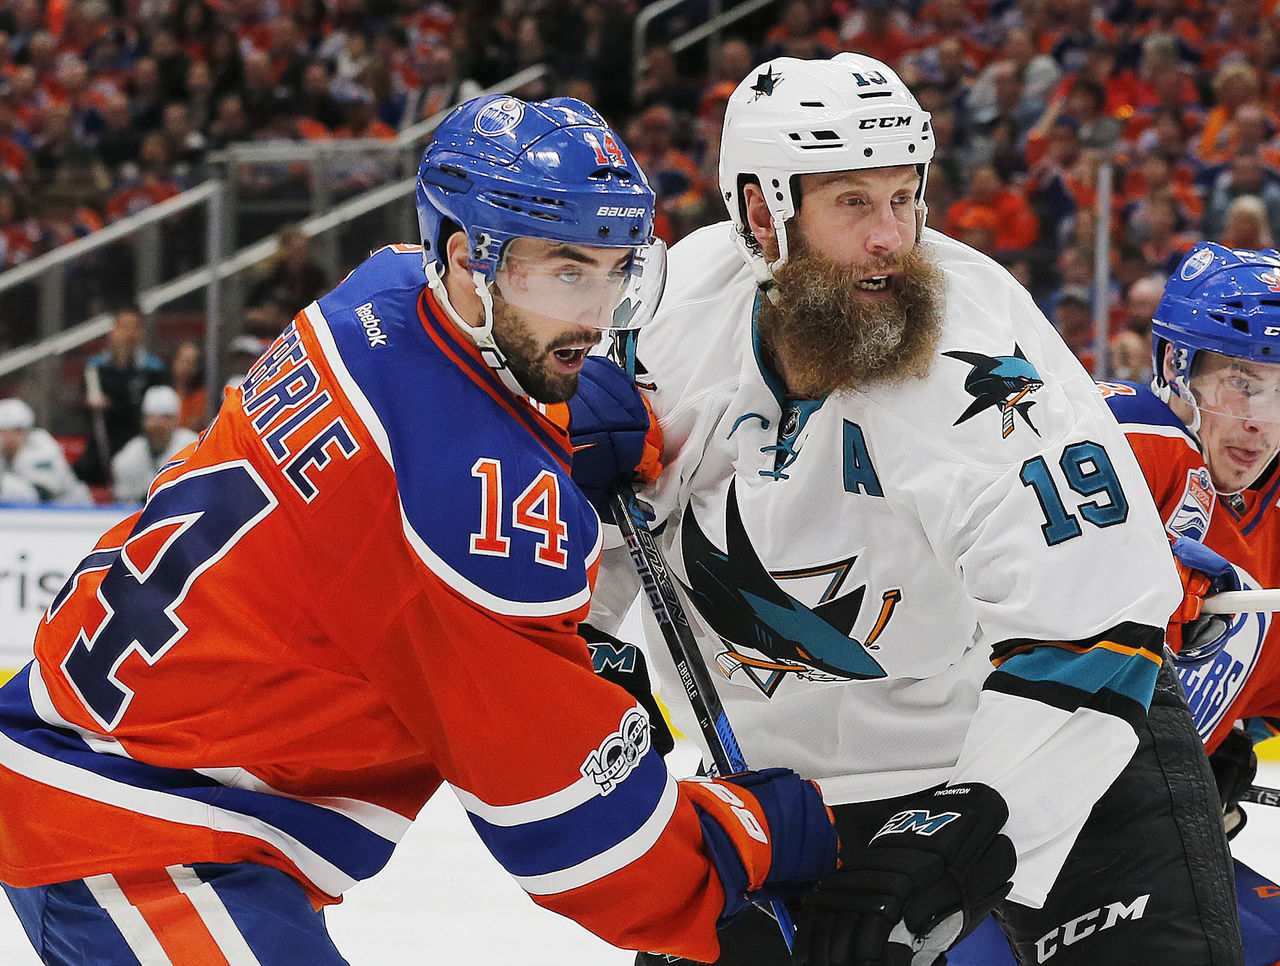 Cropped 2017 04 21t052429z 940733854 nocid rtrmadp 3 nhl stanley cup playoffs san jose sharks at edmonton oilers